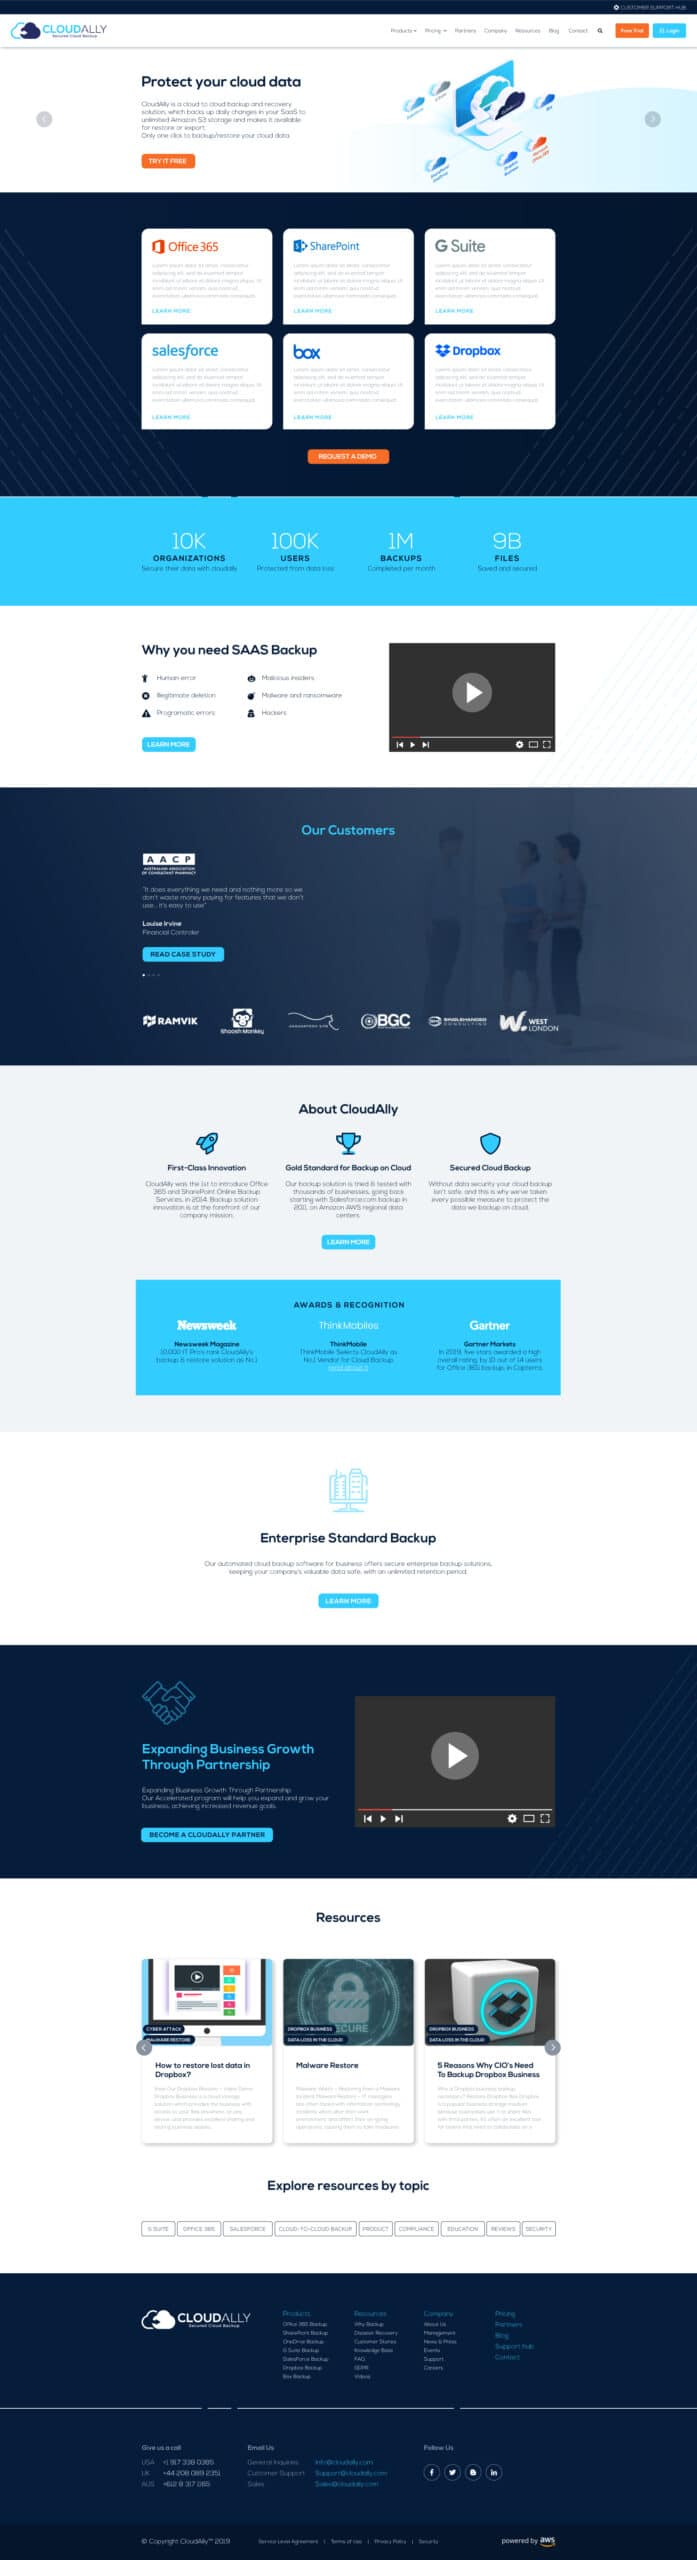 Cloudally_Homepage_v12